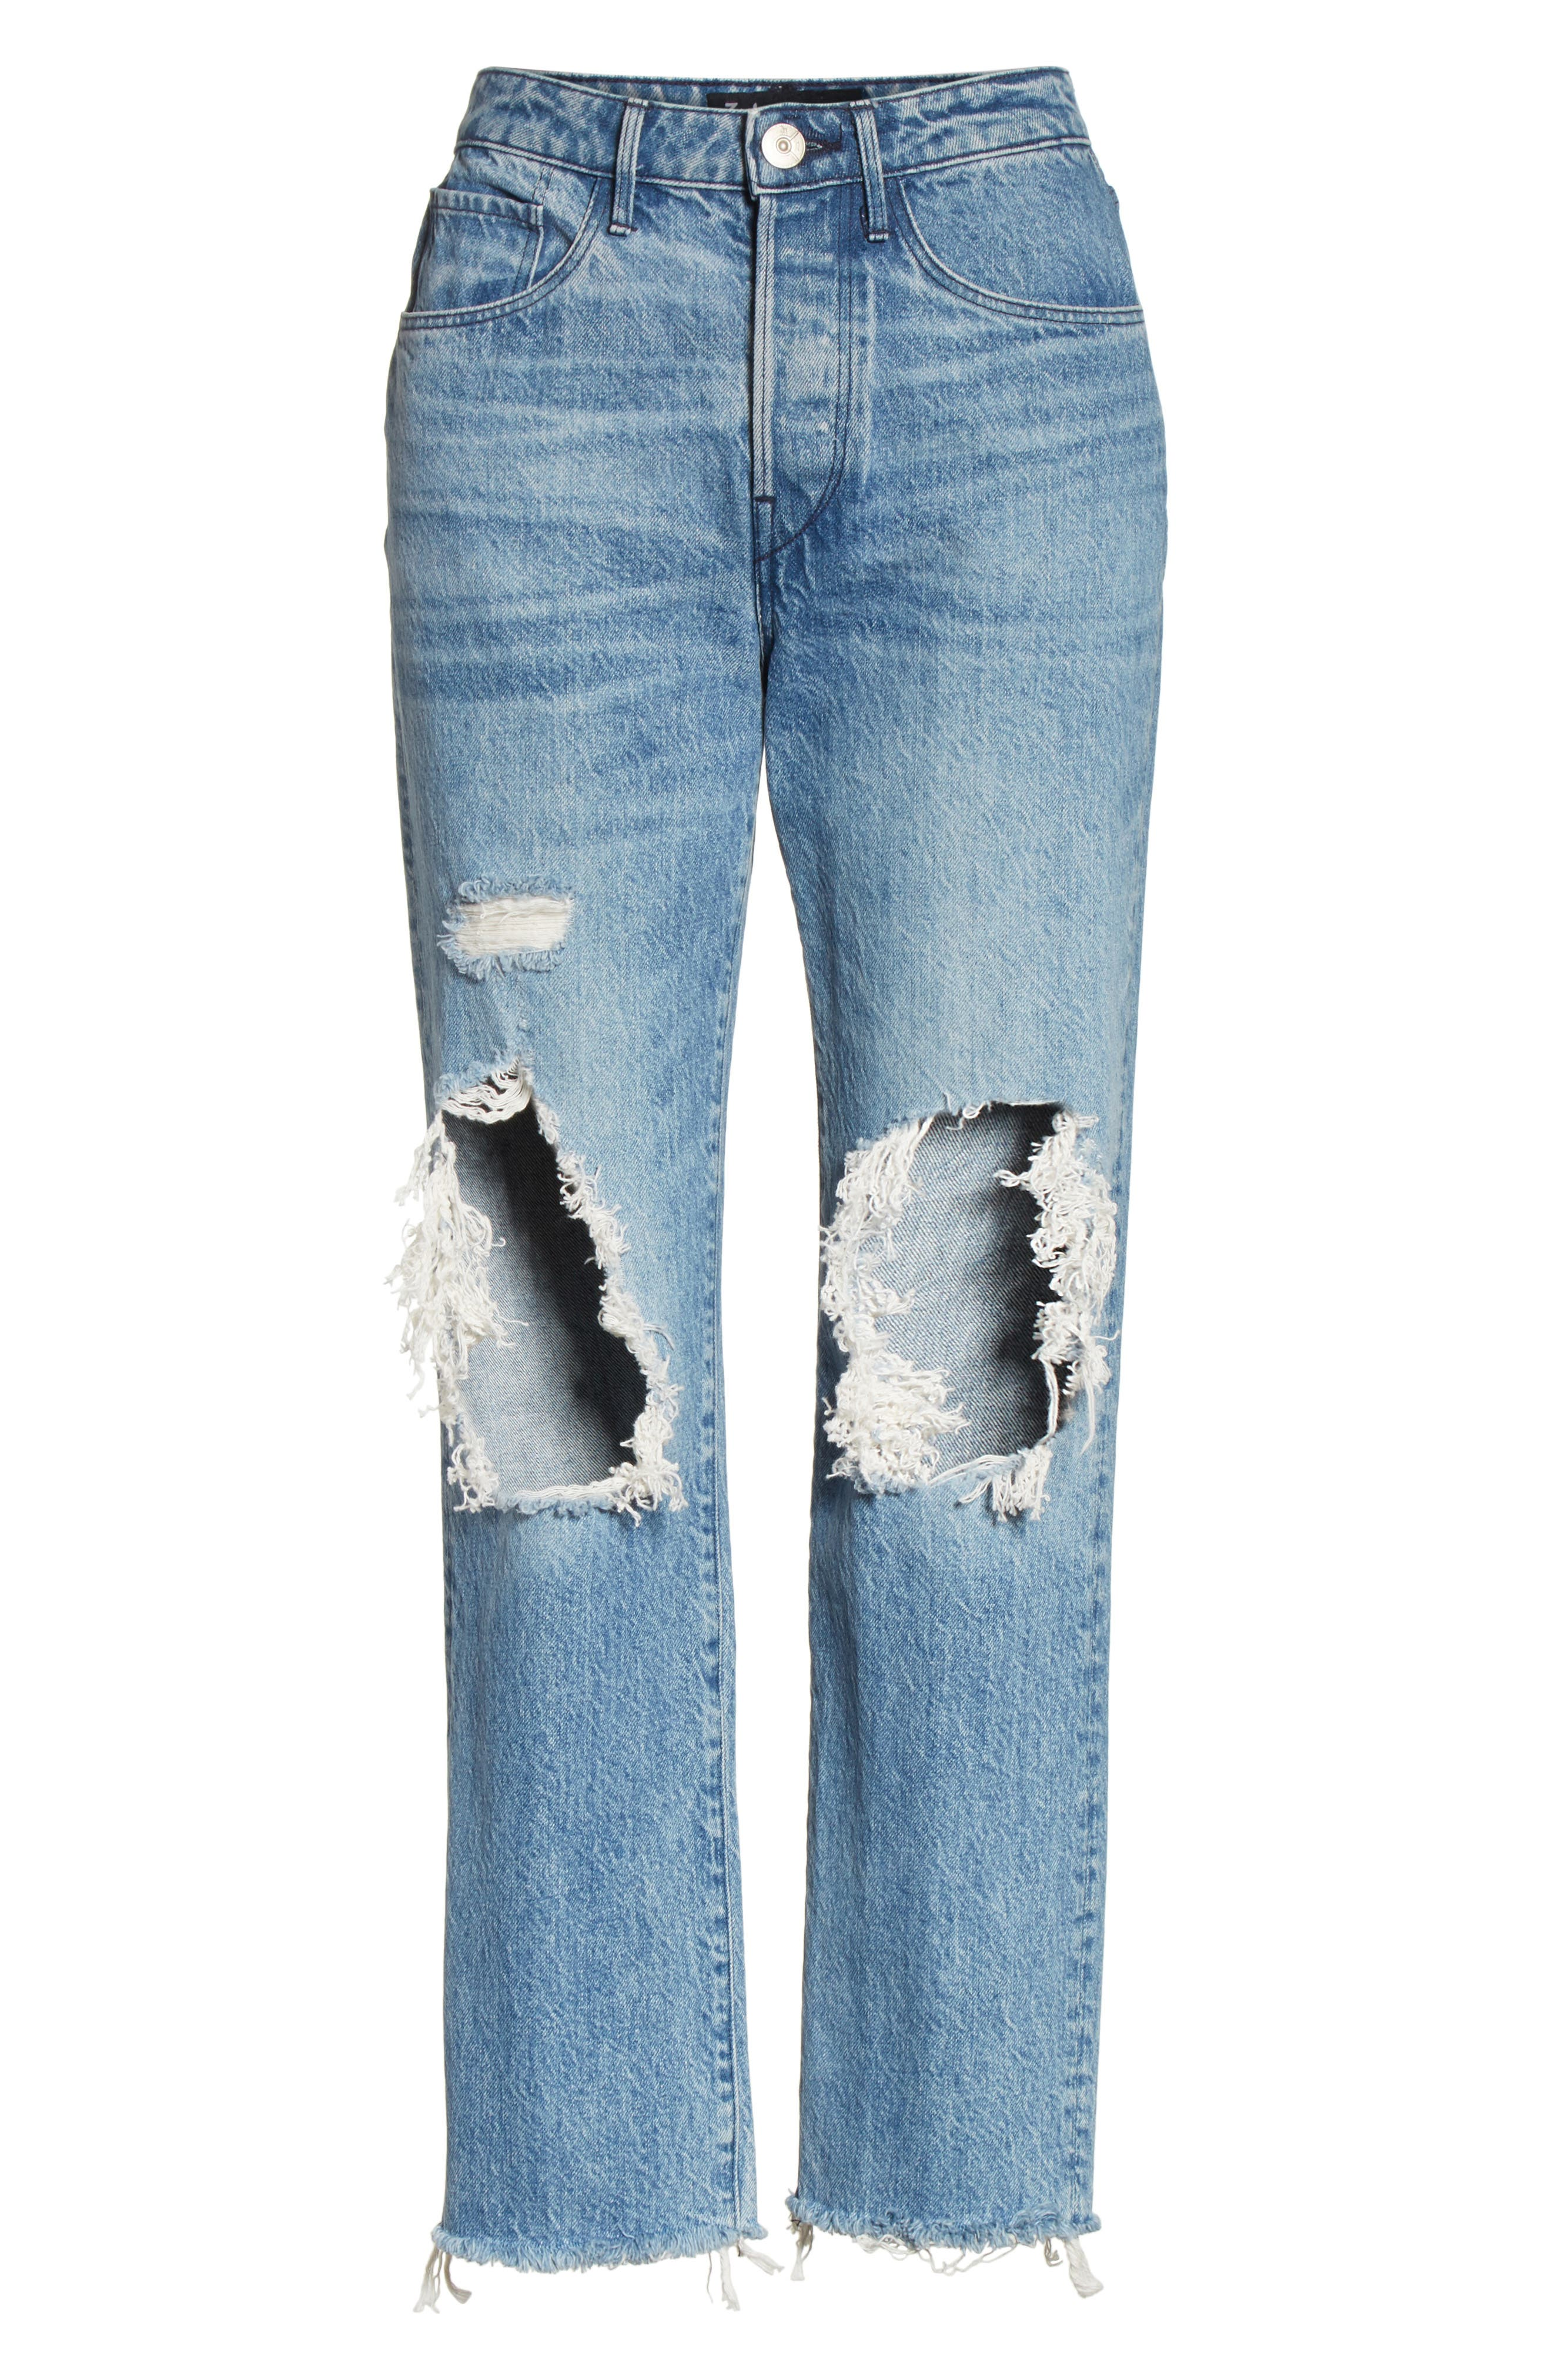 W3 Higher Ground Ripped Crop Boyfriend Jeans,                             Alternate thumbnail 6, color,                             Clutch